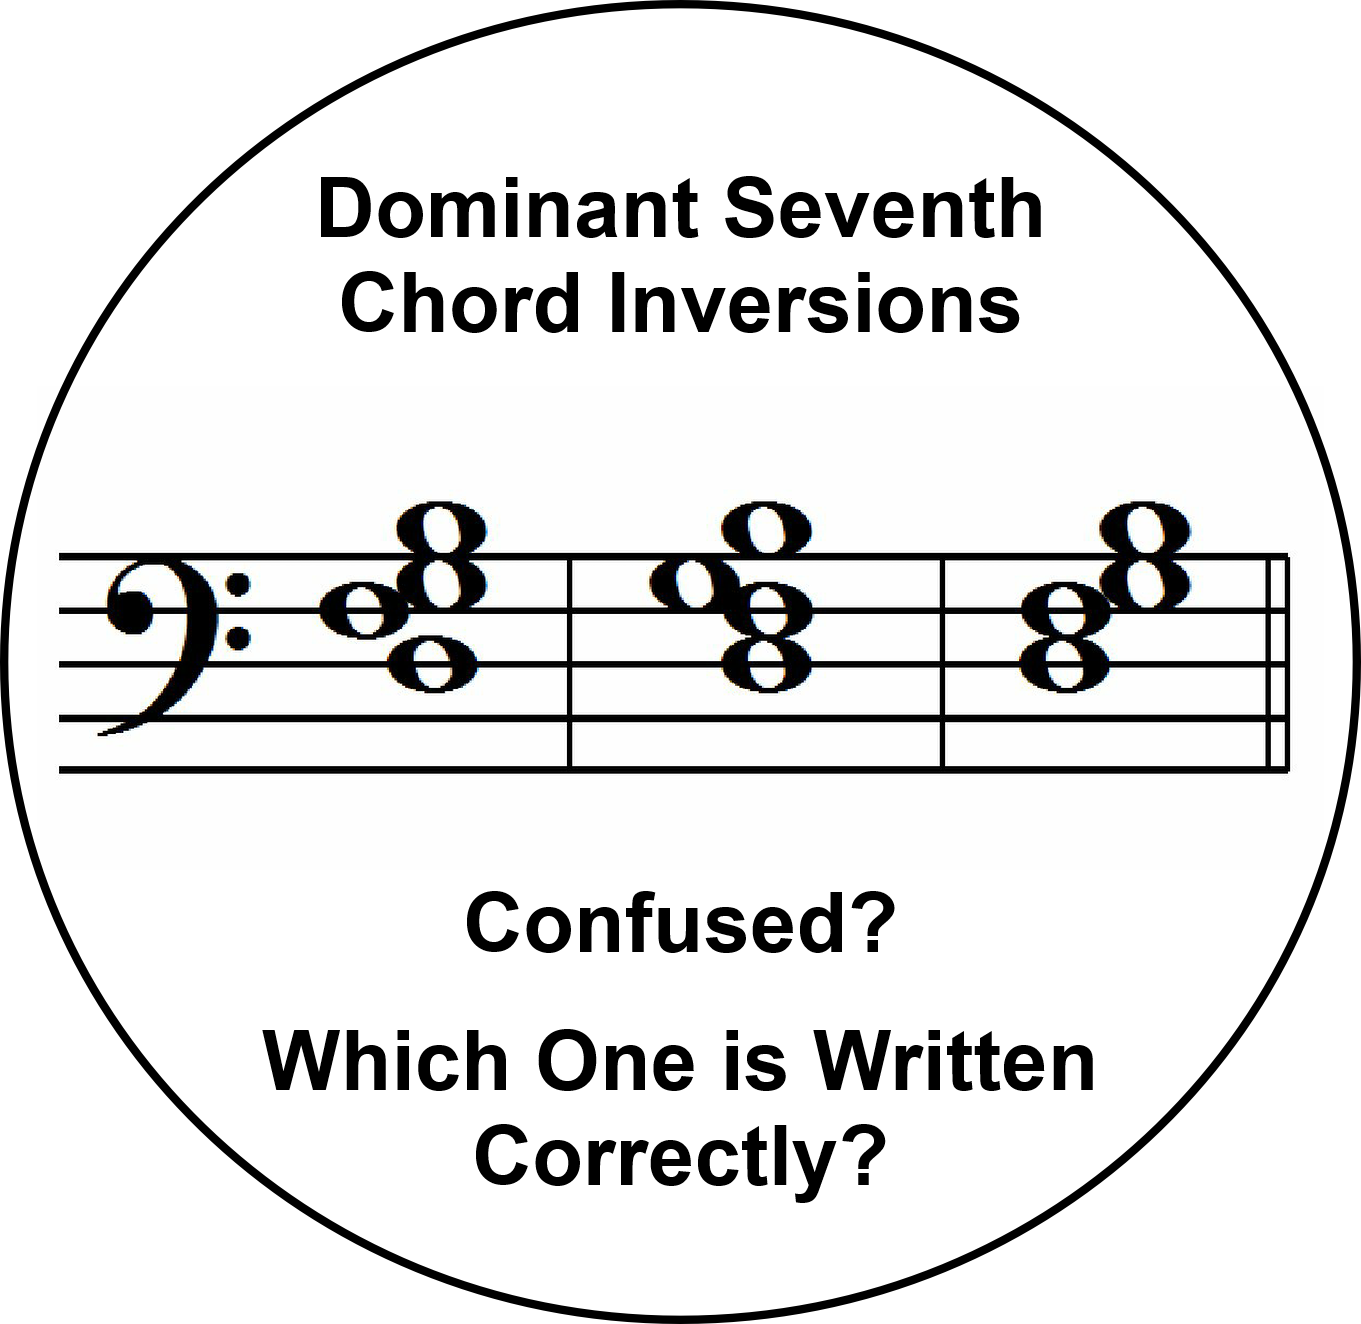 Ultimate Music Theory - Dominant 7th Chords - Avoid Confusion